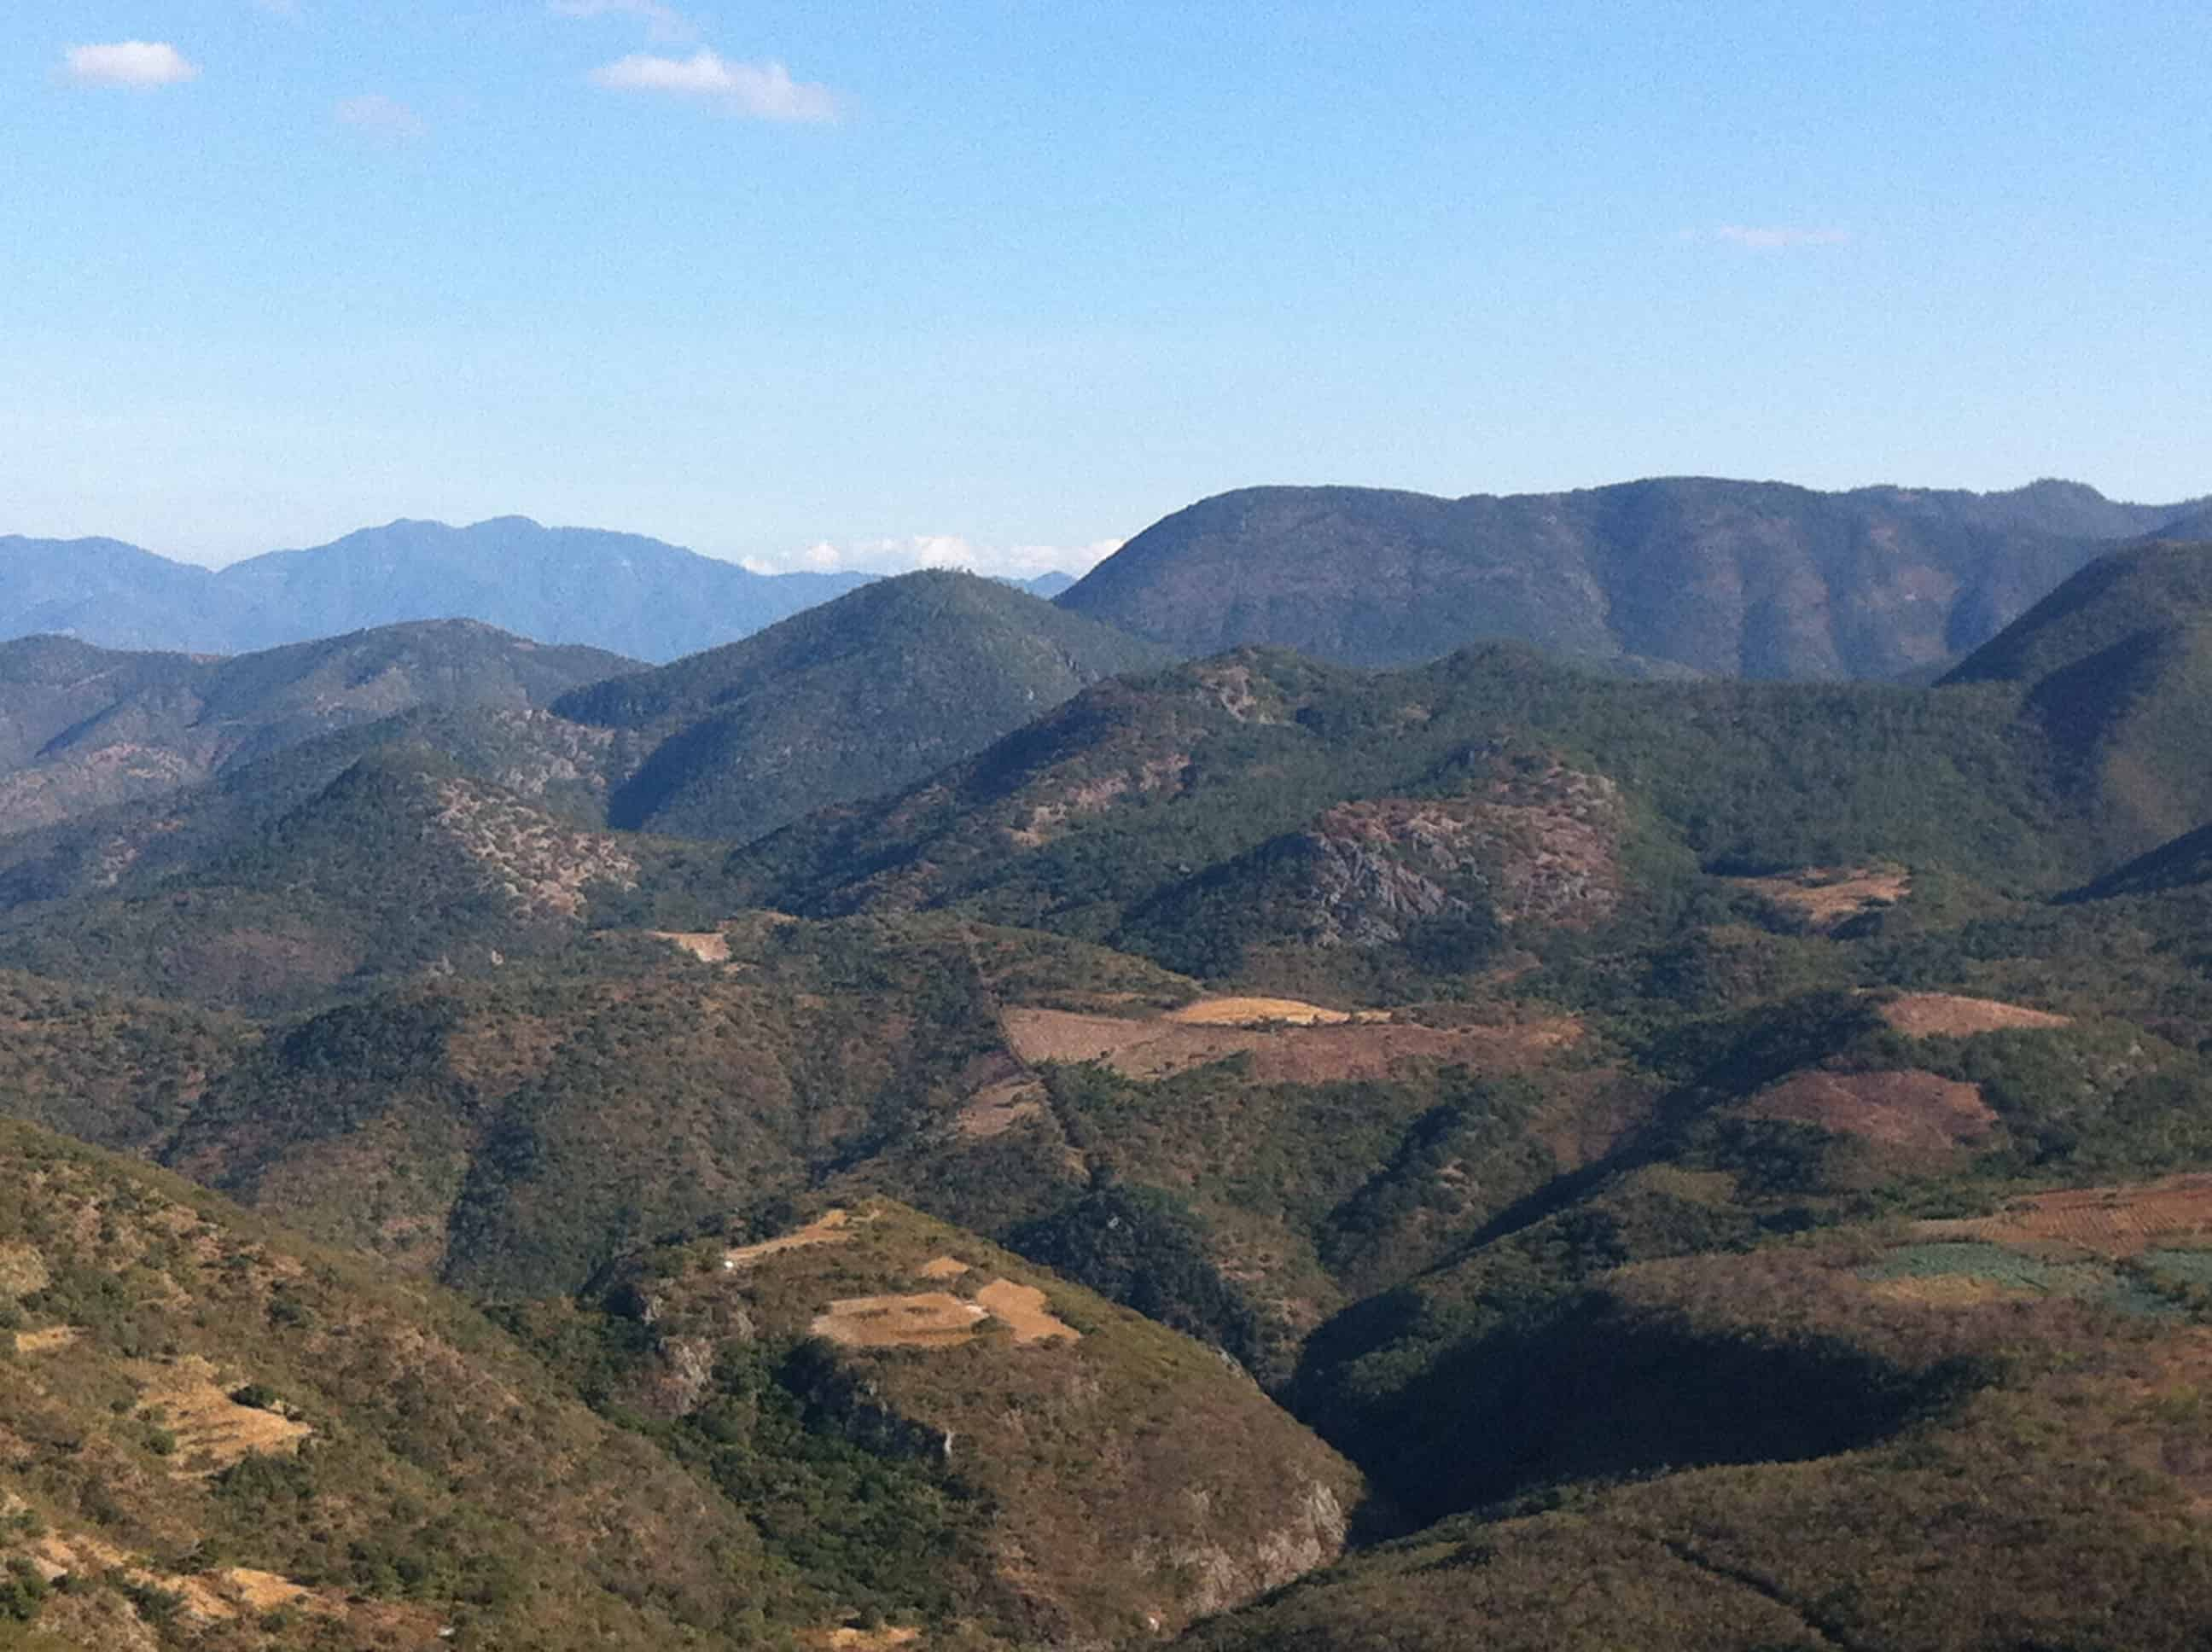 The view from Hierve el Agua